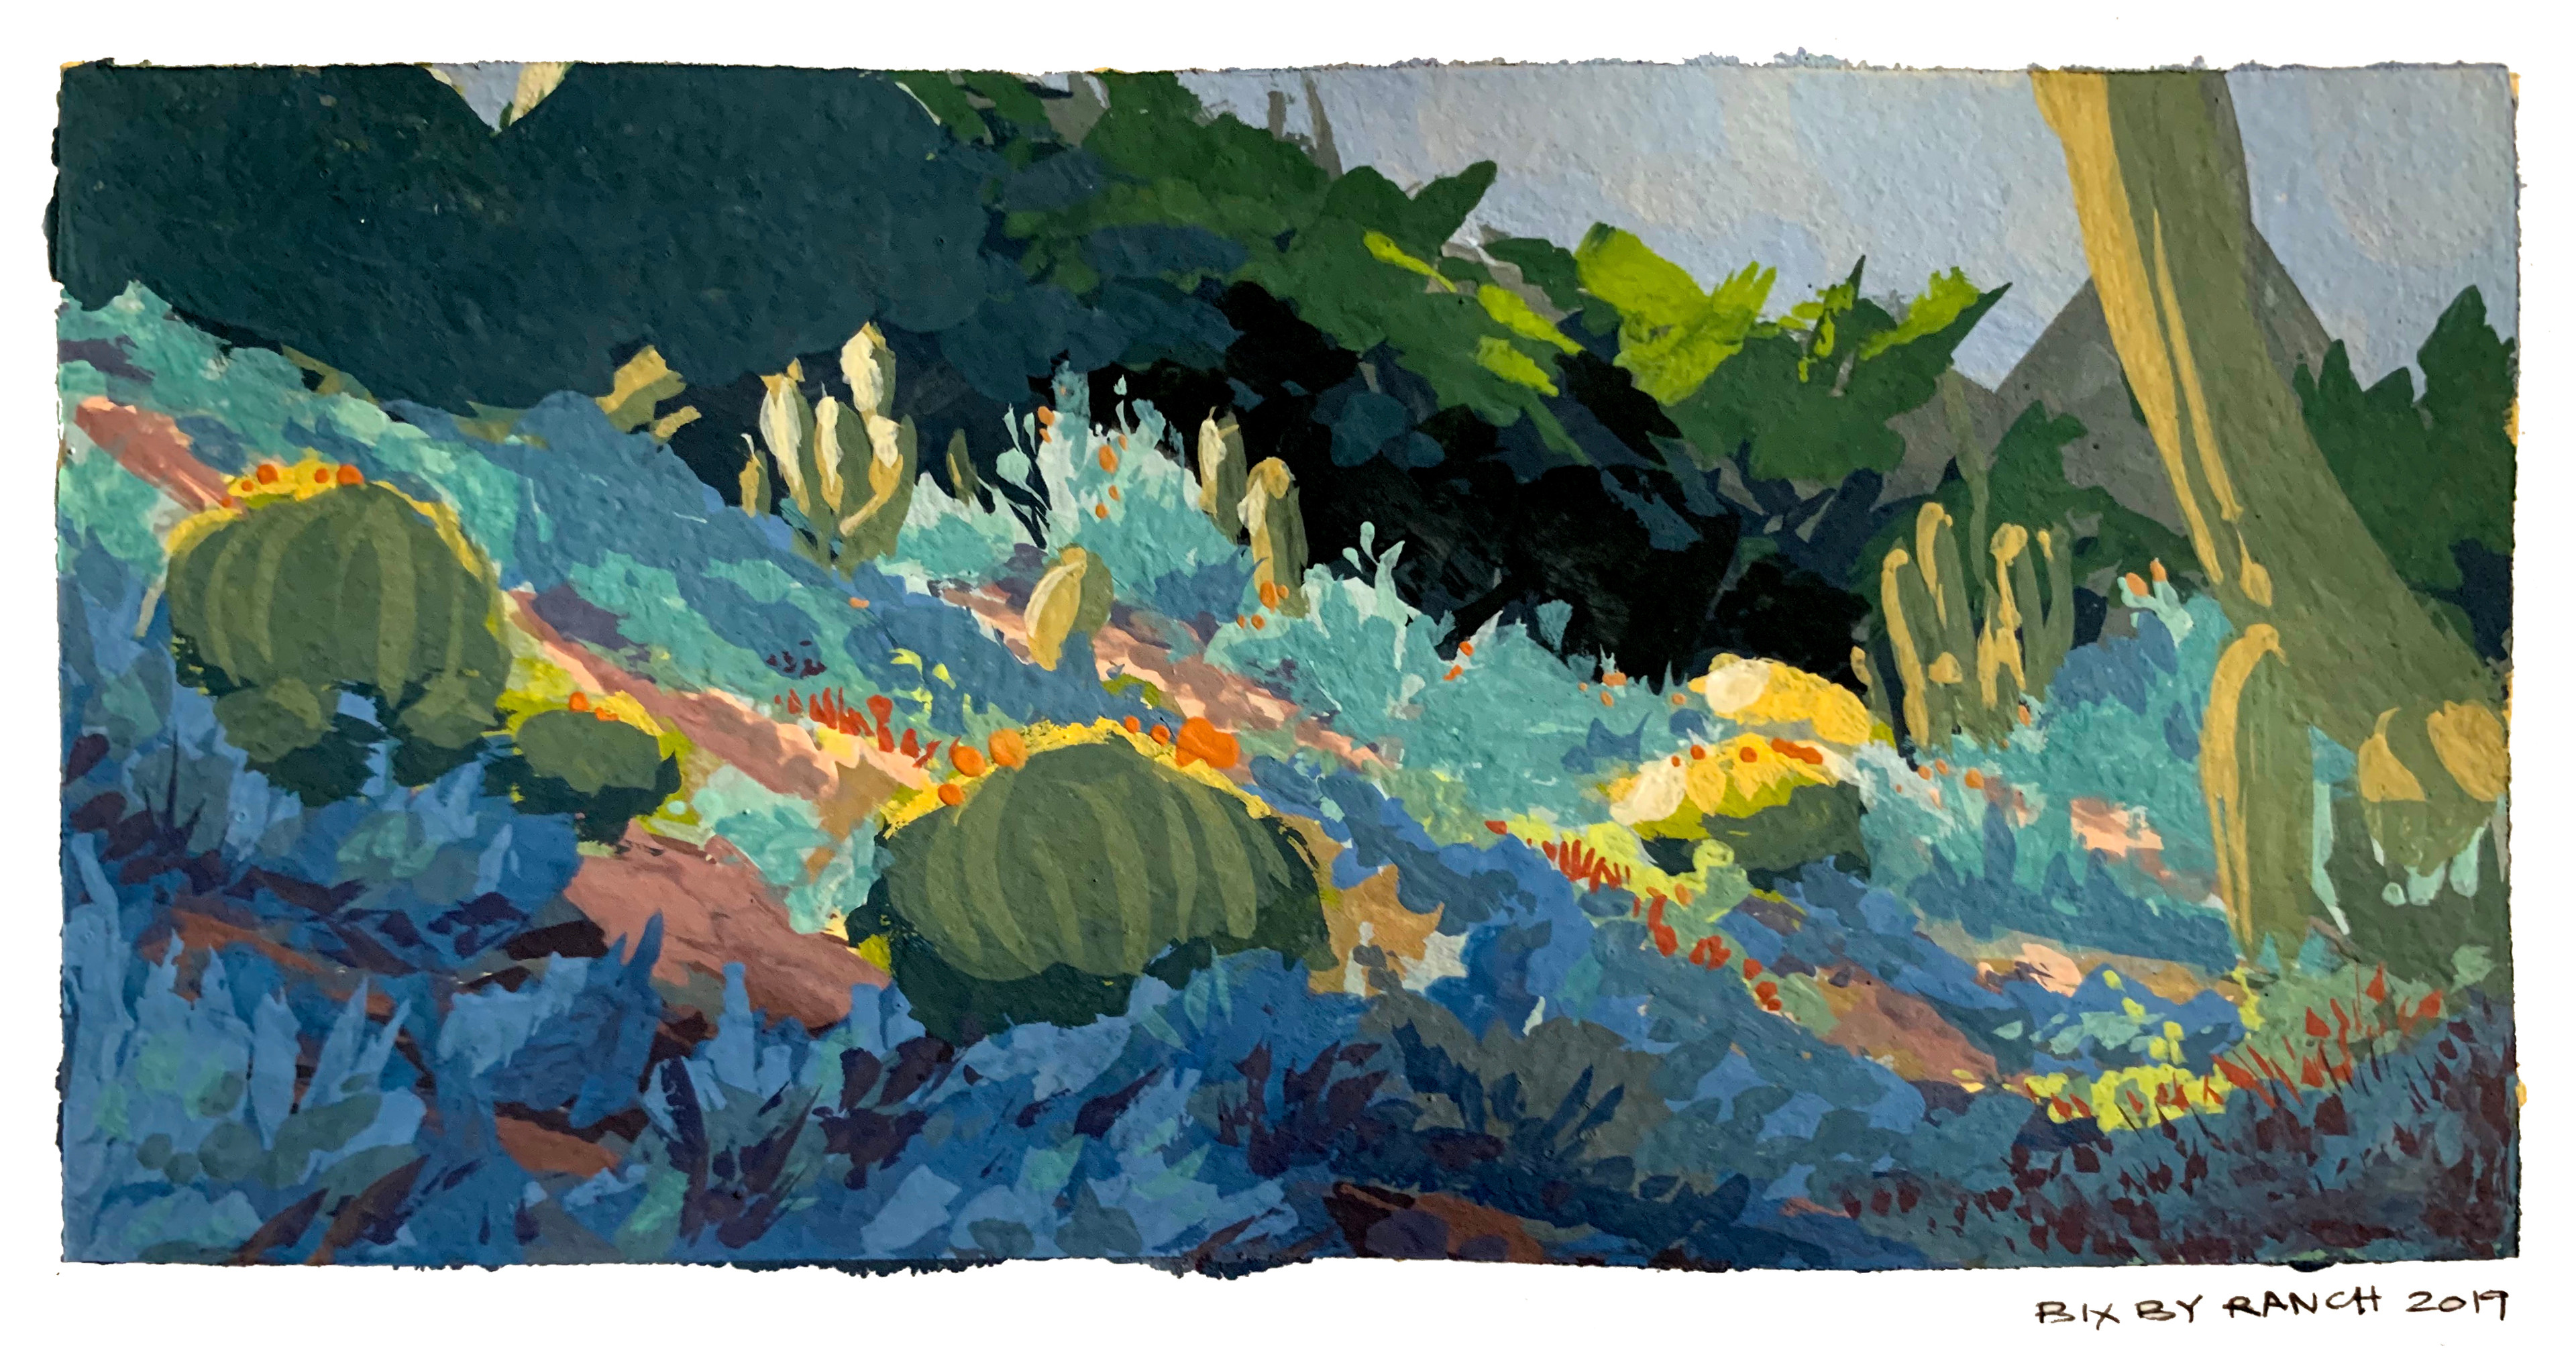 Painted at Bixby ranch.  I was walking around and came across a section of the gardens that the last bit of sun was still touching, so I frantically tried to paint it before it was gone.